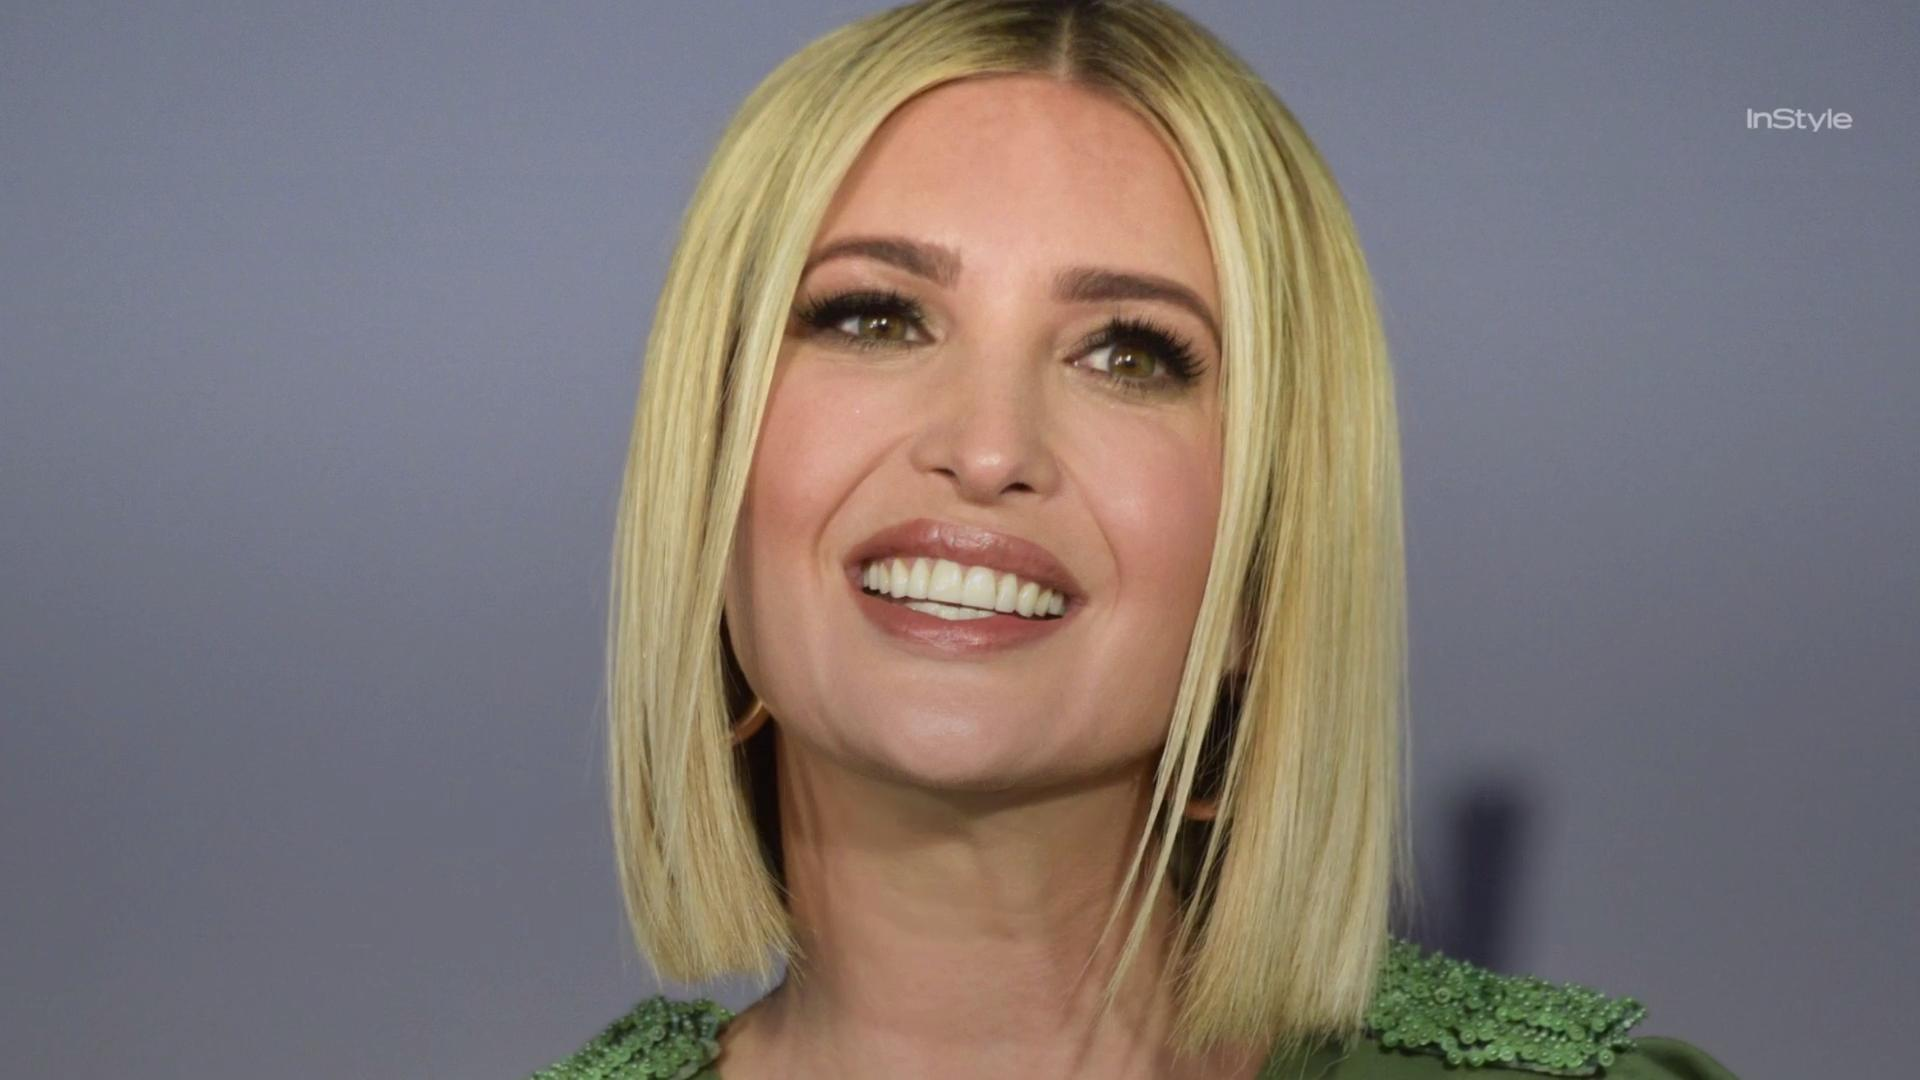 Ivanka Trump Just Cut Off All of Her Hair